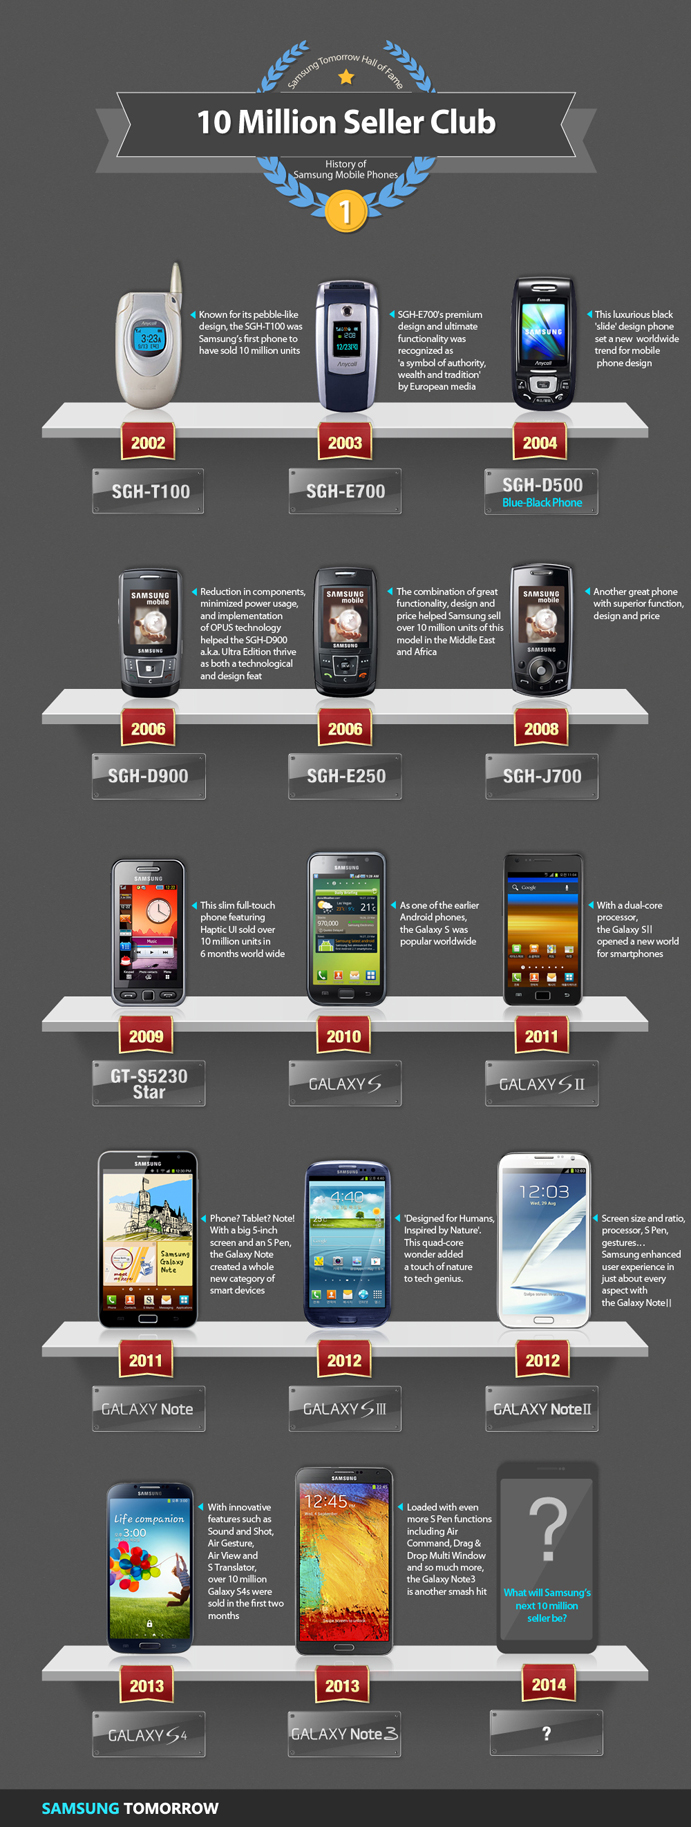 History of Samsung Mobile Phones 10 Million Seller Club #infographic